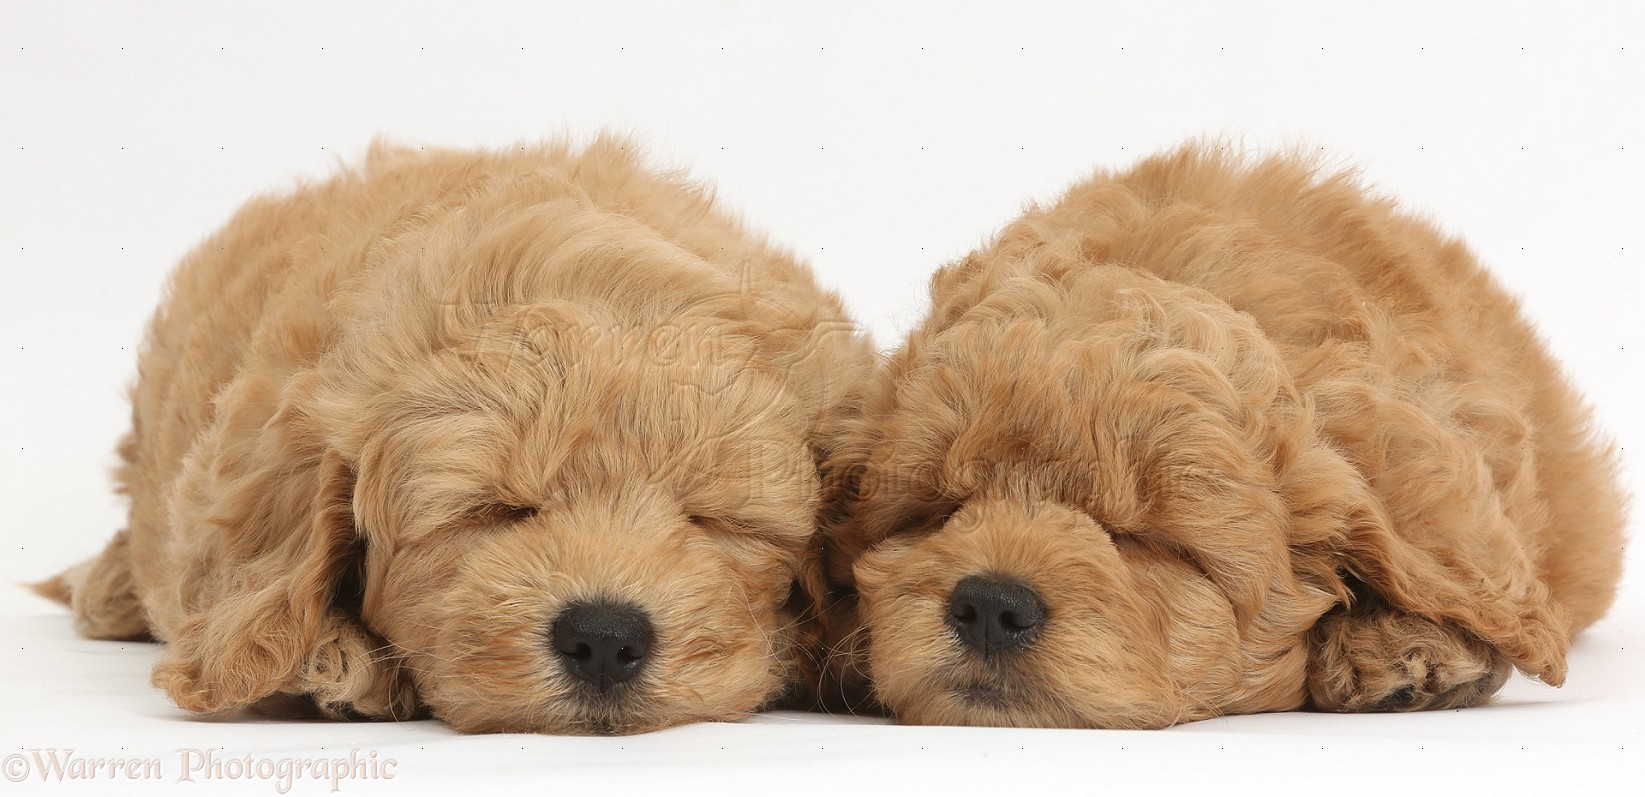 dogs: cute sleeping f1b goldendoodle puppies photo wp38331